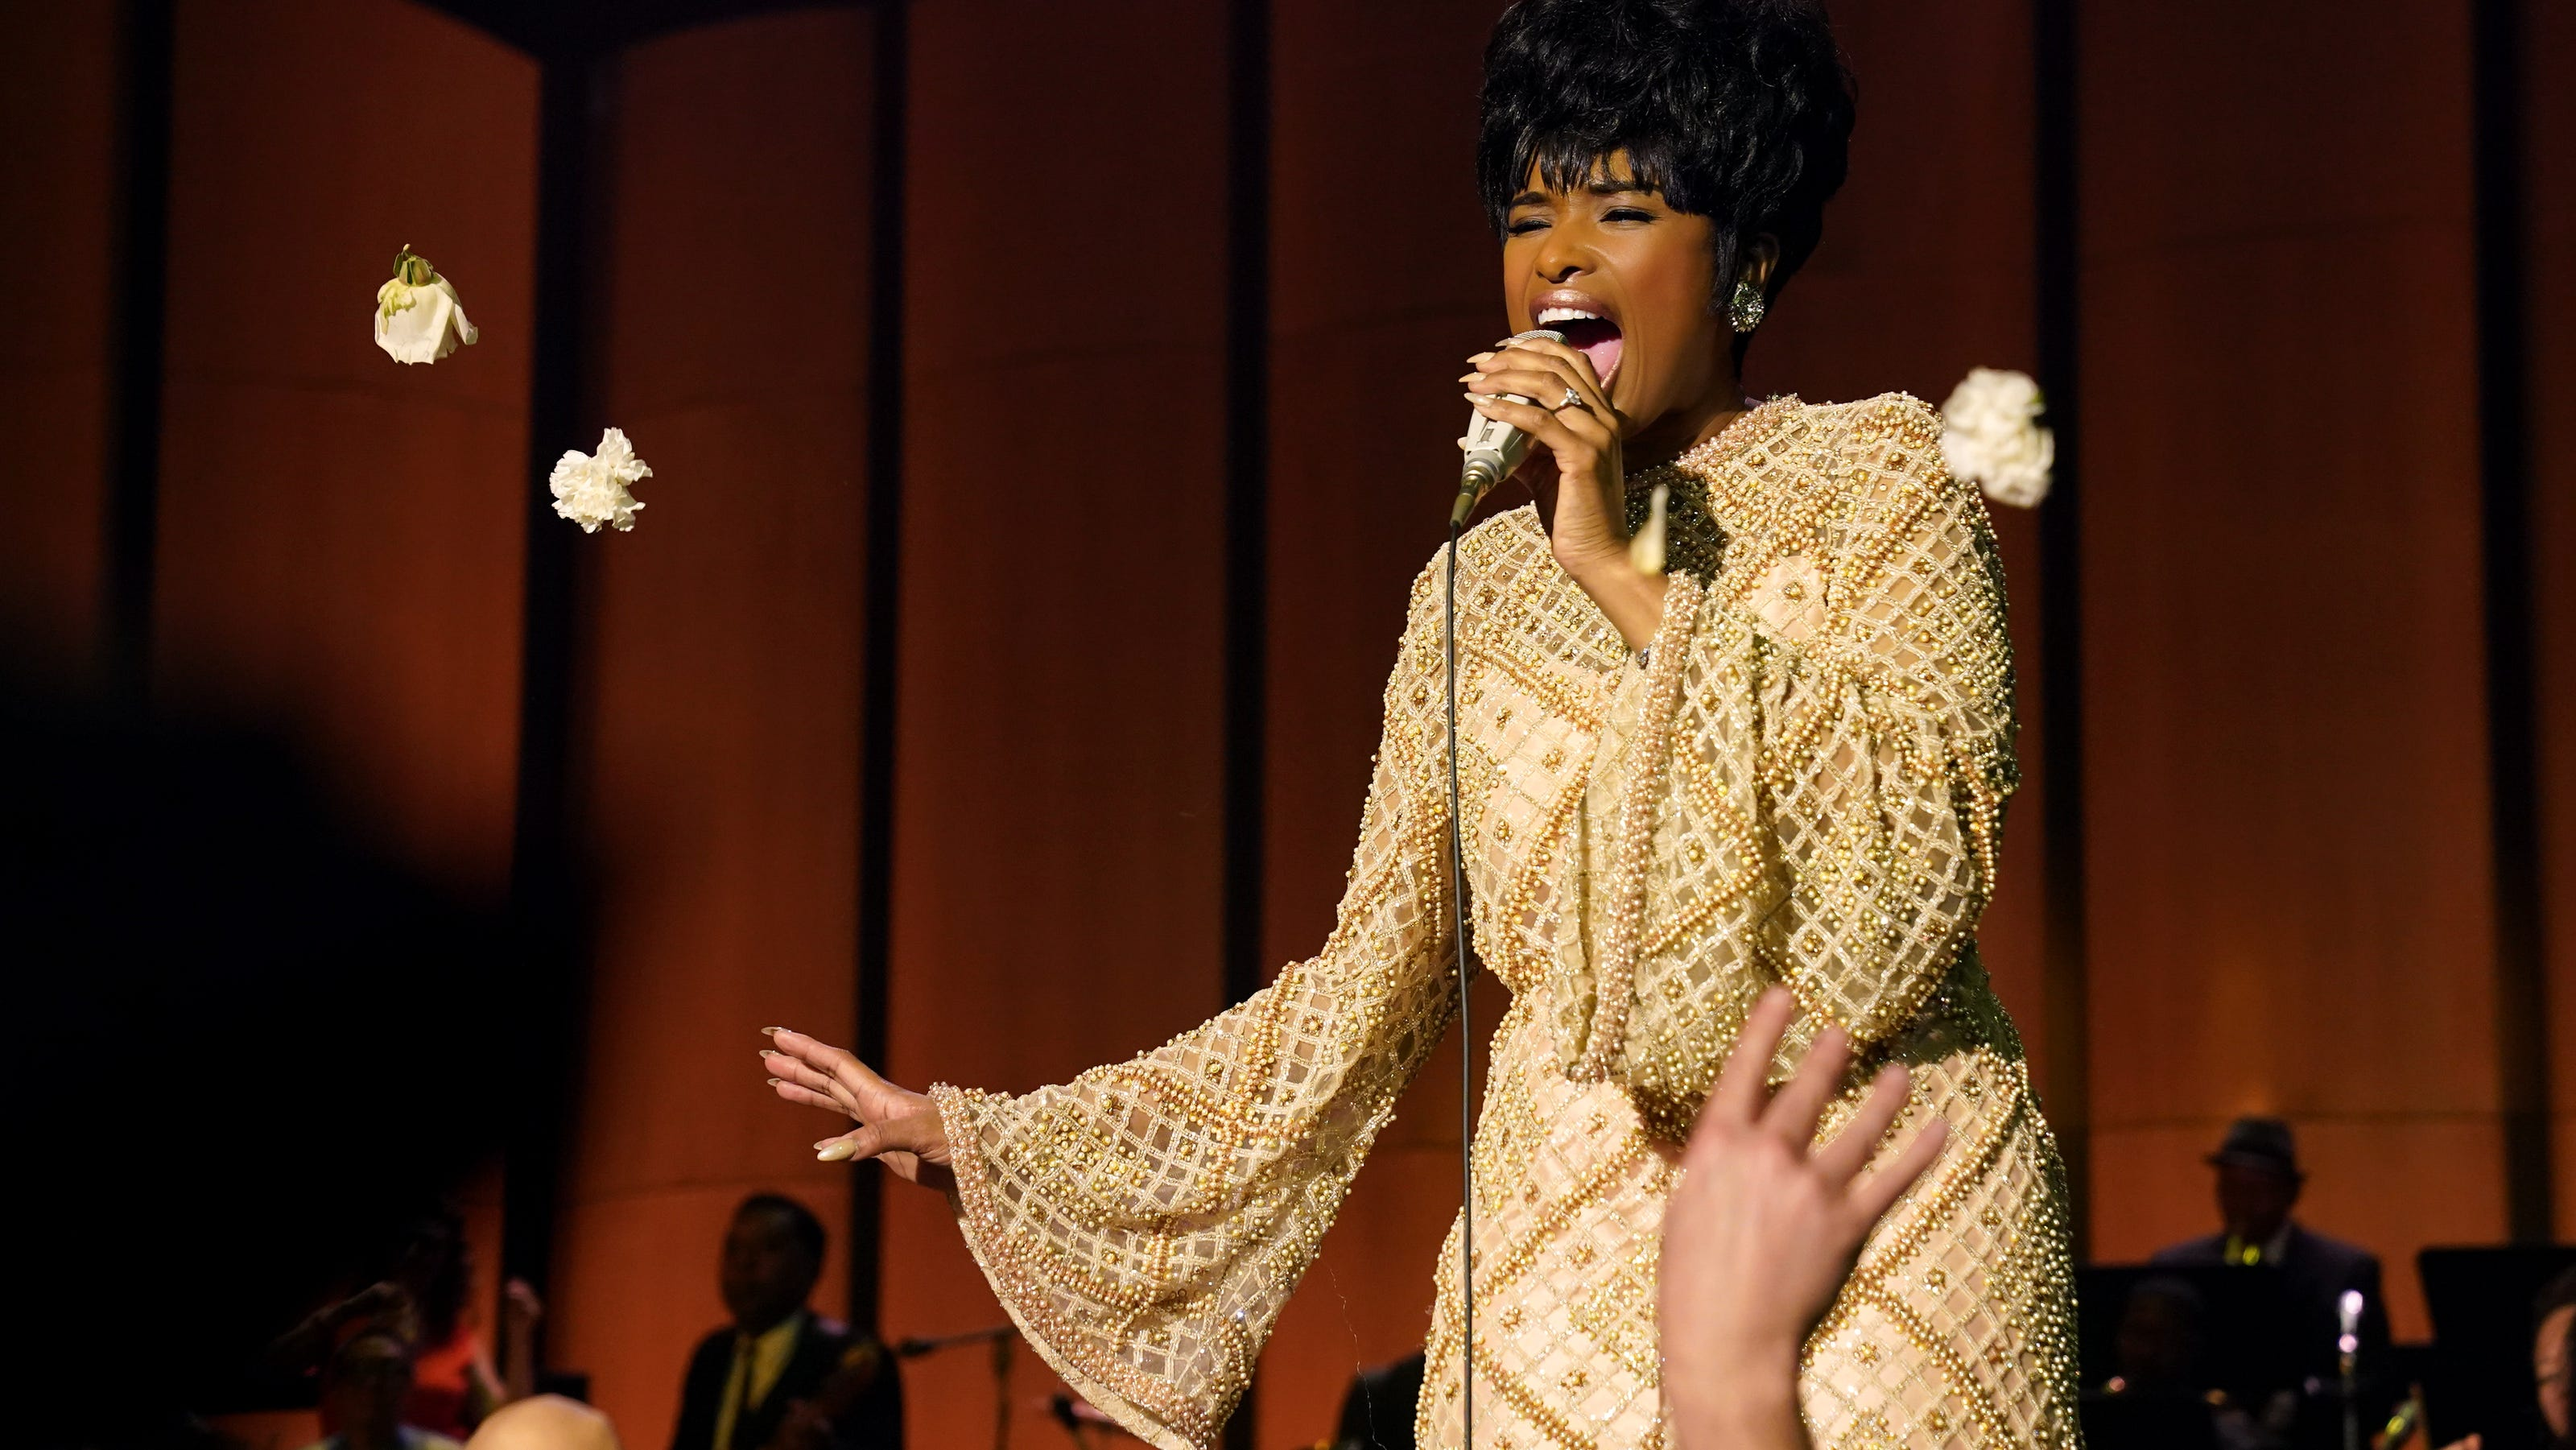 Jennifer Hudson heads to Detroit to watch 'Respect' with Aretha Franklin's family